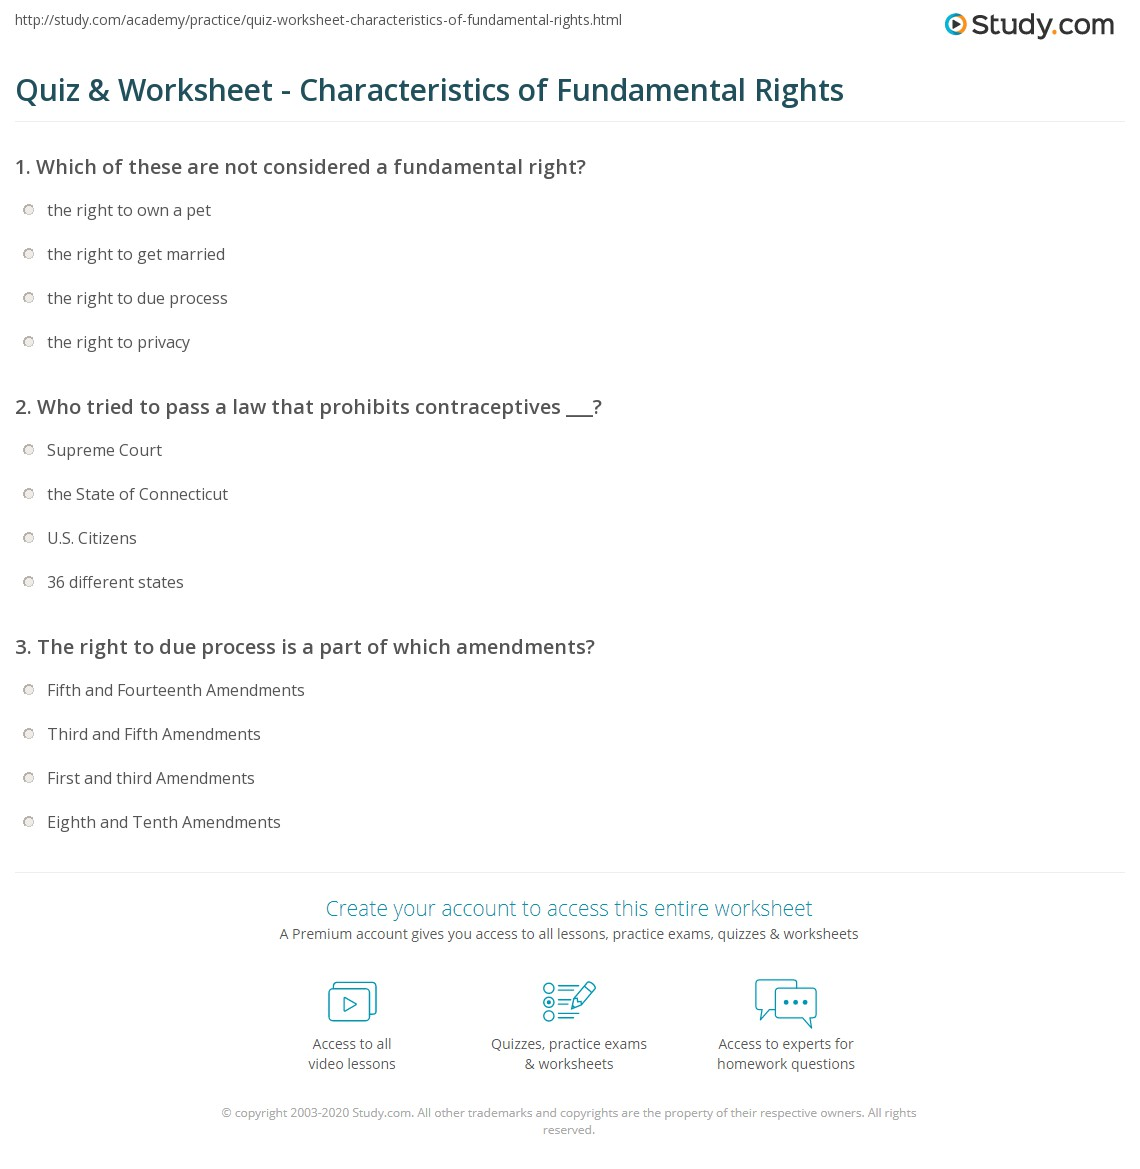 Aldiablosus  Marvellous Quiz Amp Worksheet  Characteristics Of Fundamental Rights  Studycom With Excellent Print What Are Fundamental Rights  Definition Types Amp Features Worksheet With Archaic Non Cash Charitable Contributions Donations Worksheet Also Number  Worksheets In Addition Multiplication Worksheets Generator And Self Worth Worksheets As Well As Arithmetic Sequence Worksheets Additionally Th Grade Health Worksheets From Studycom With Aldiablosus  Excellent Quiz Amp Worksheet  Characteristics Of Fundamental Rights  Studycom With Archaic Print What Are Fundamental Rights  Definition Types Amp Features Worksheet And Marvellous Non Cash Charitable Contributions Donations Worksheet Also Number  Worksheets In Addition Multiplication Worksheets Generator From Studycom